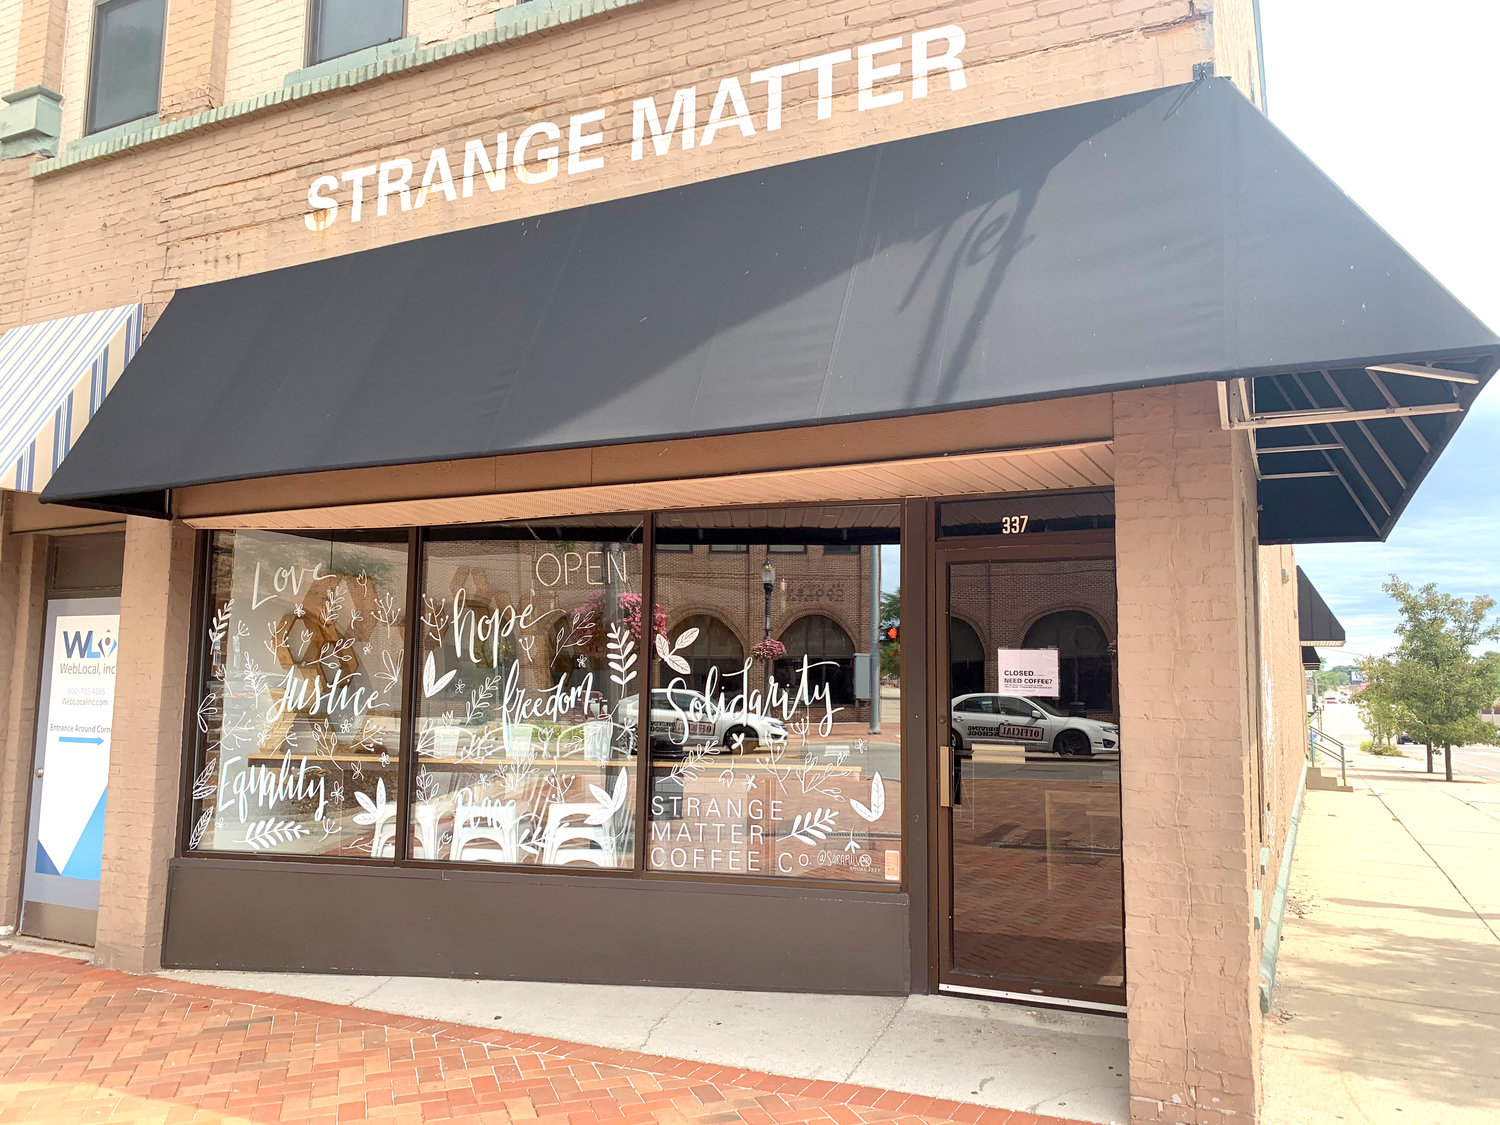 Strange Matter Coffee closed its downtown Lansing location on Washington Square last week, but the local chain is still offering curbside sales and deliveries from its cafe on East Michigan Avenue.